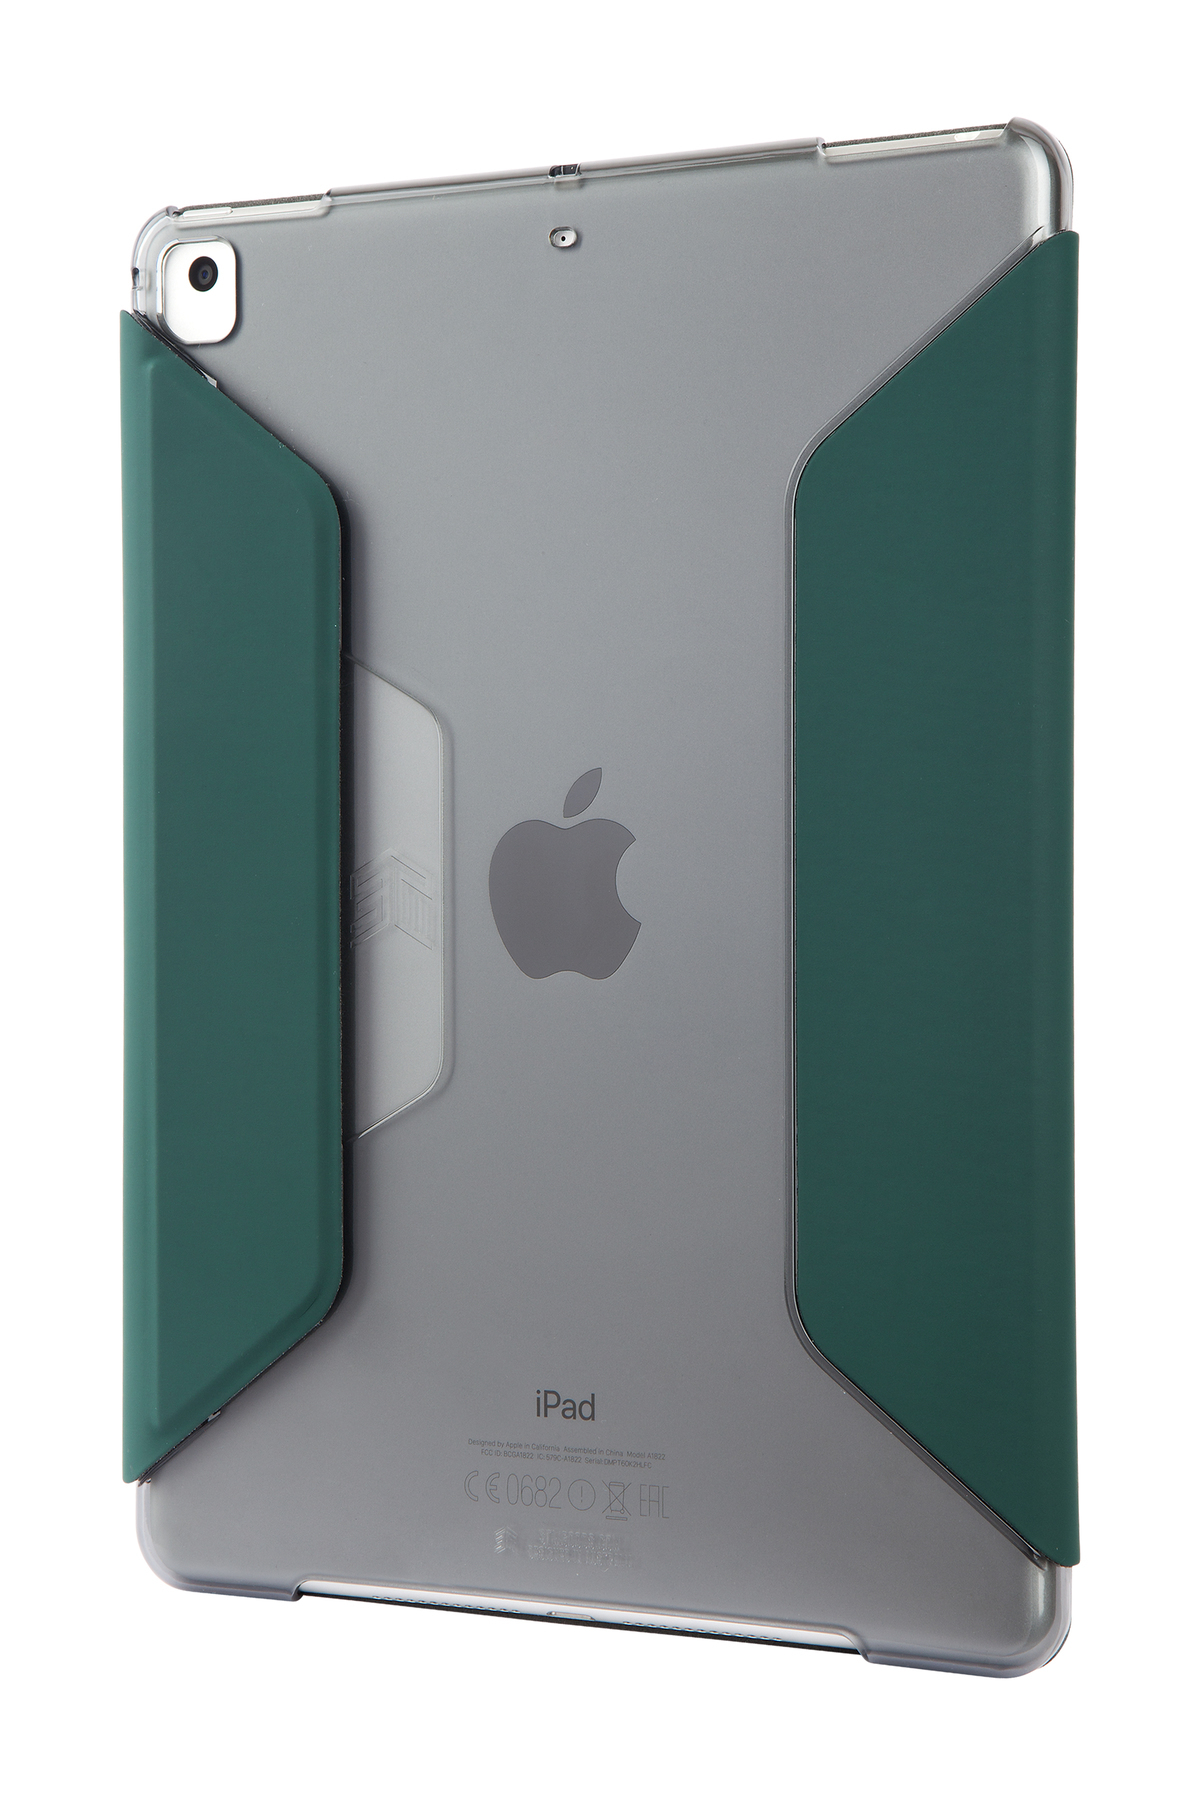 STM-2017-Studio-iPad-5thGen-Dark-Green-Rear-Angle-L.jpg